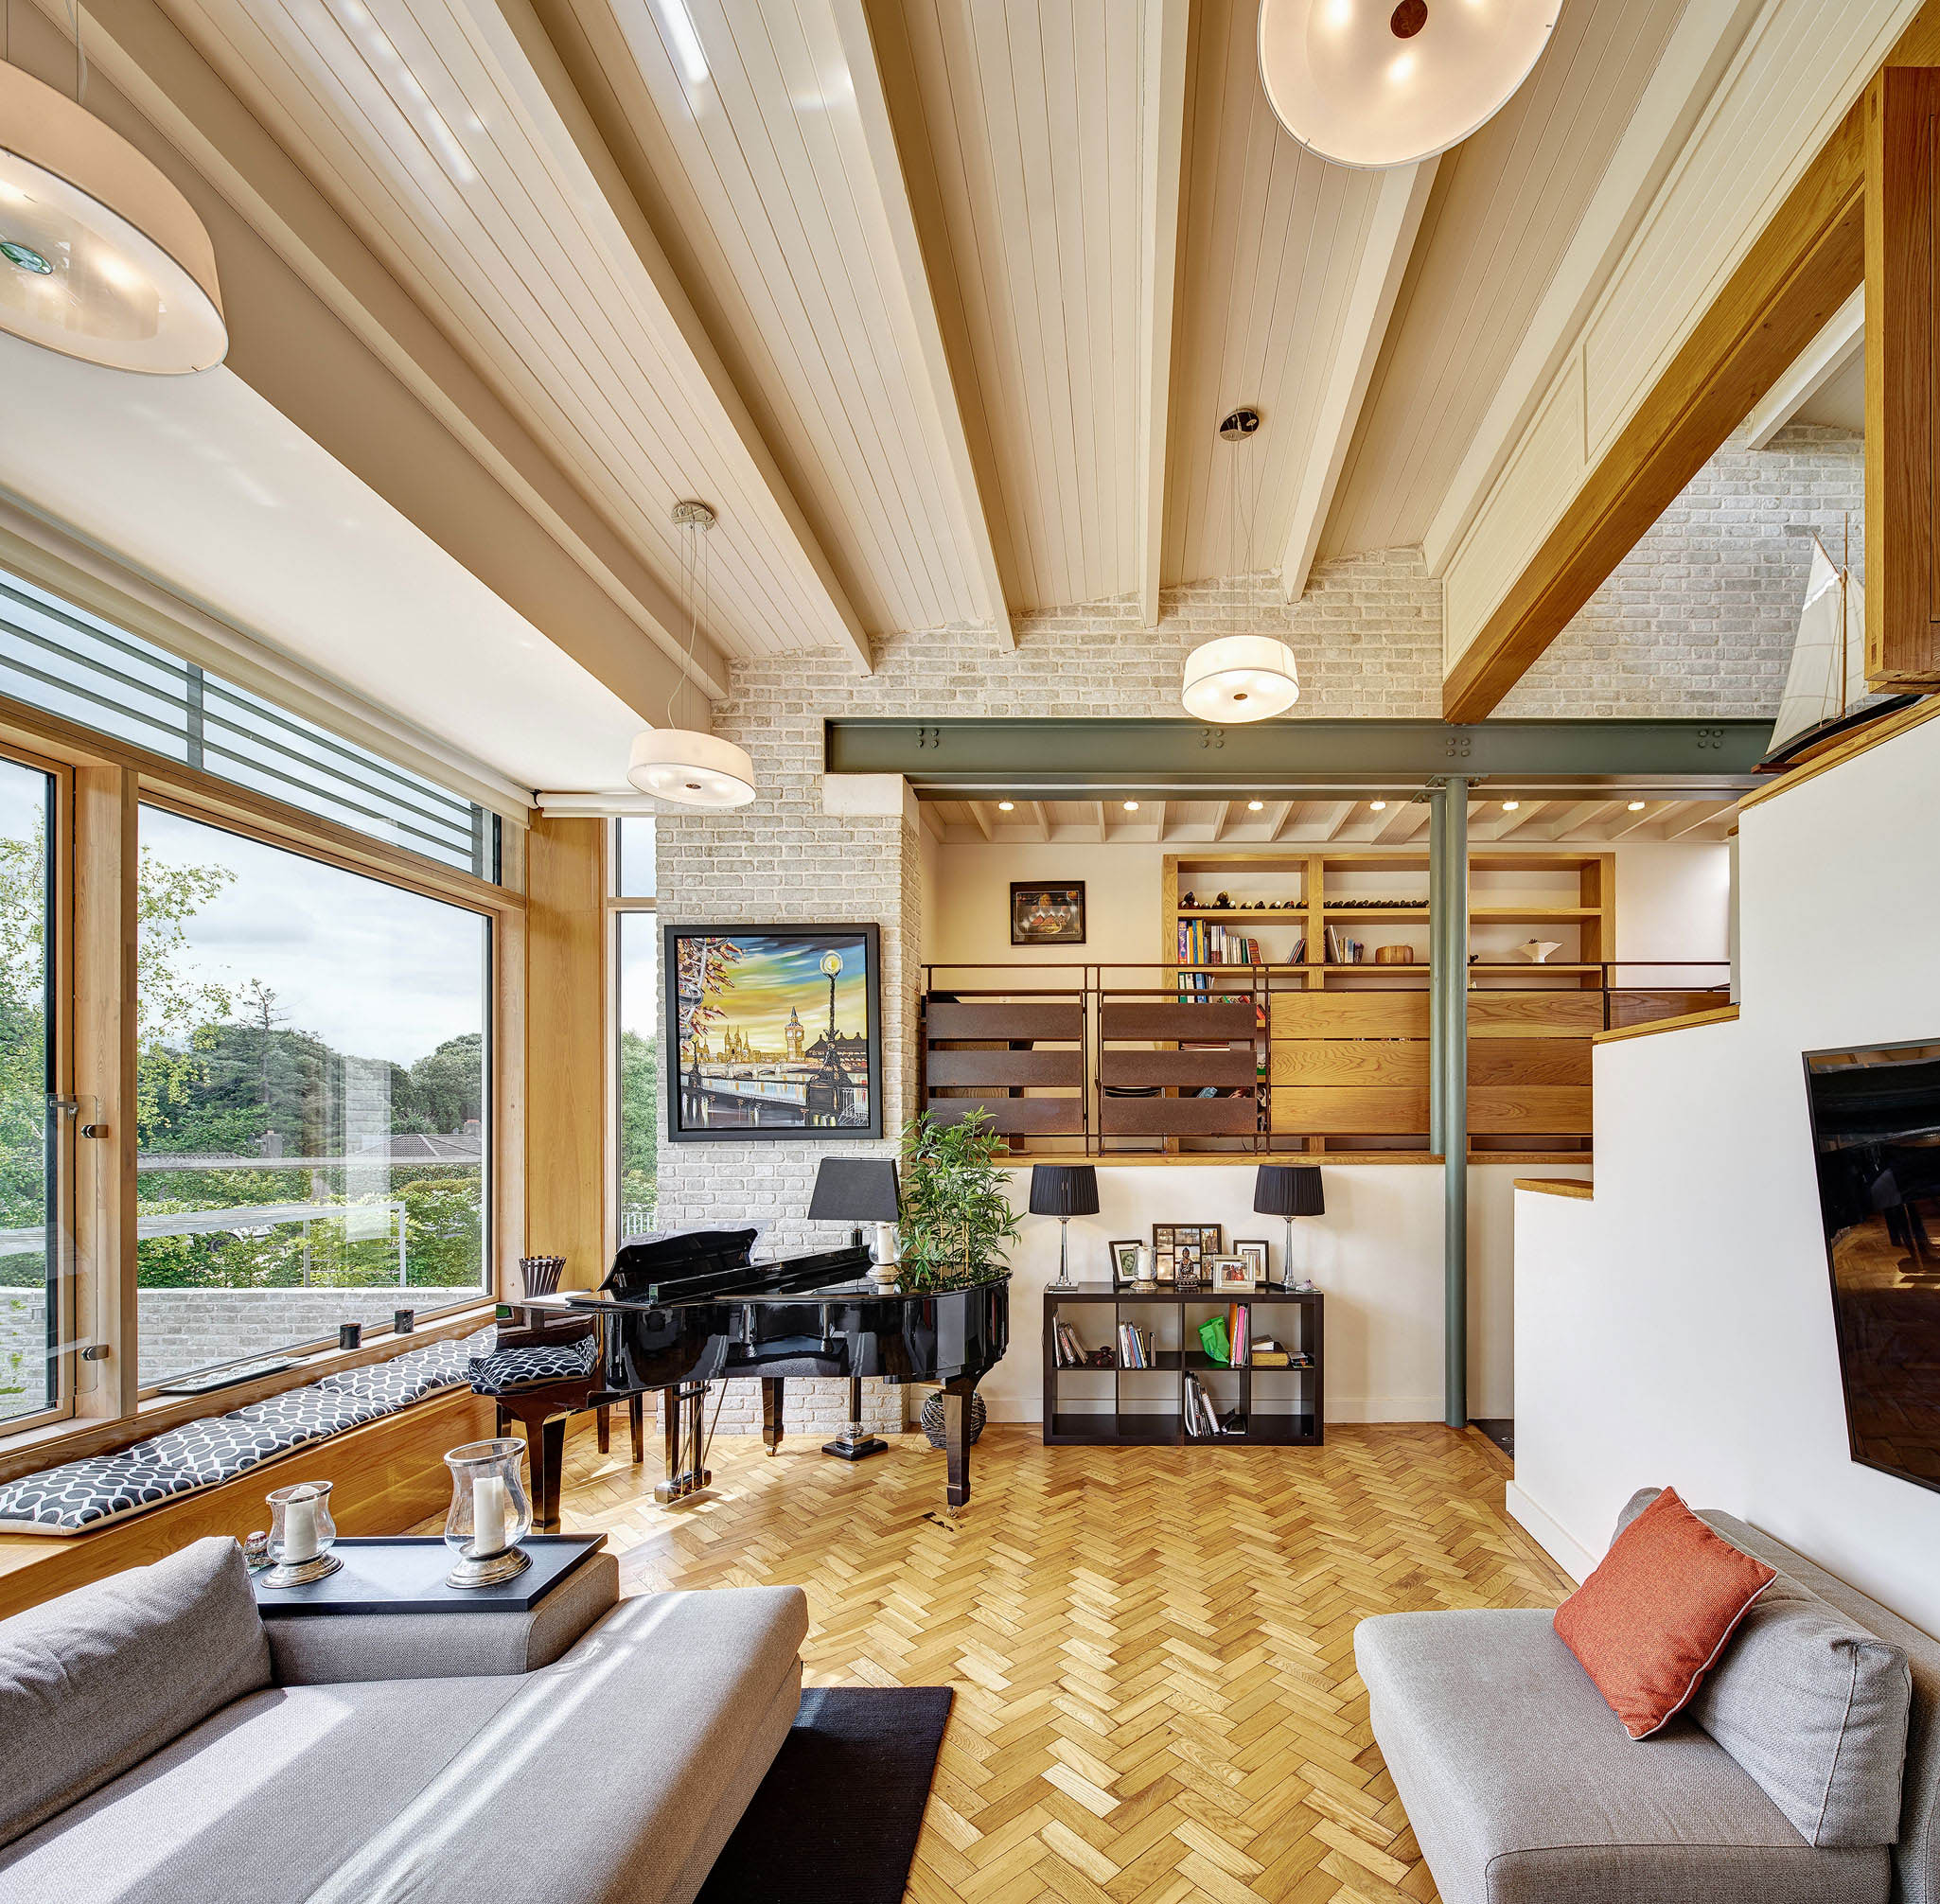 residential interiors photography two Villas Monkstown